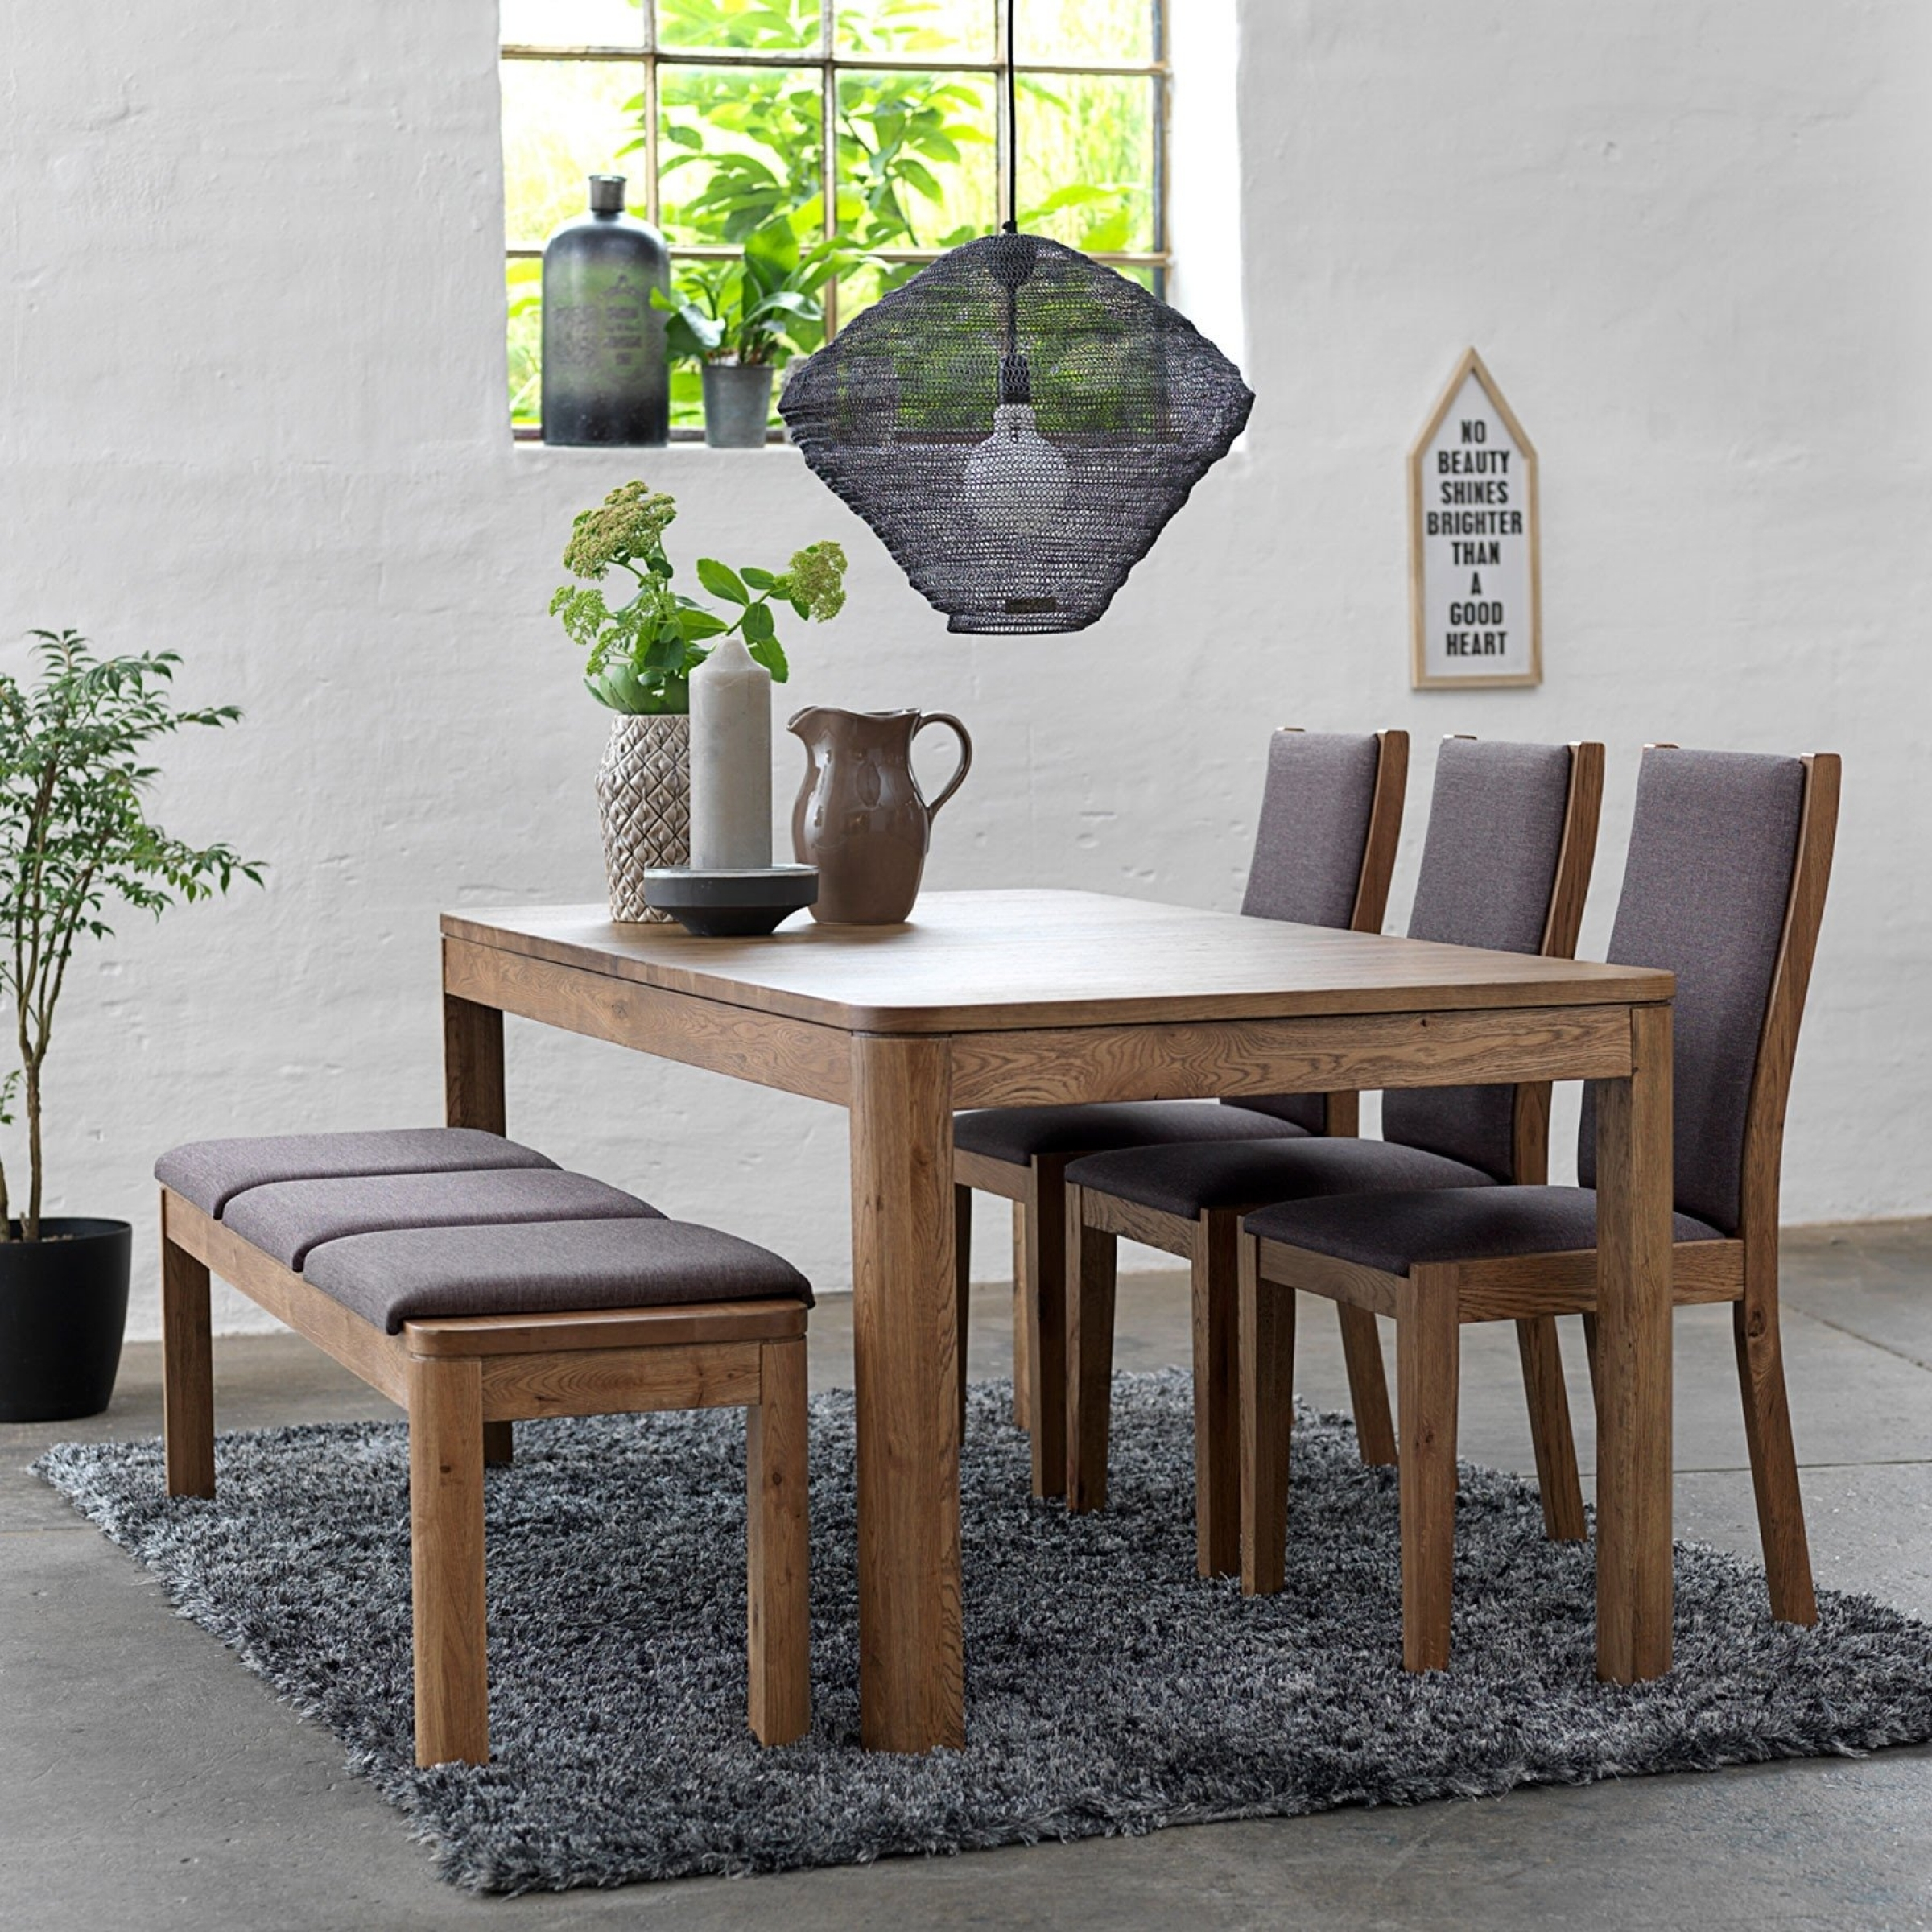 Table And Chairs: 50+ Dining Table With Bench You'll Love In 2020